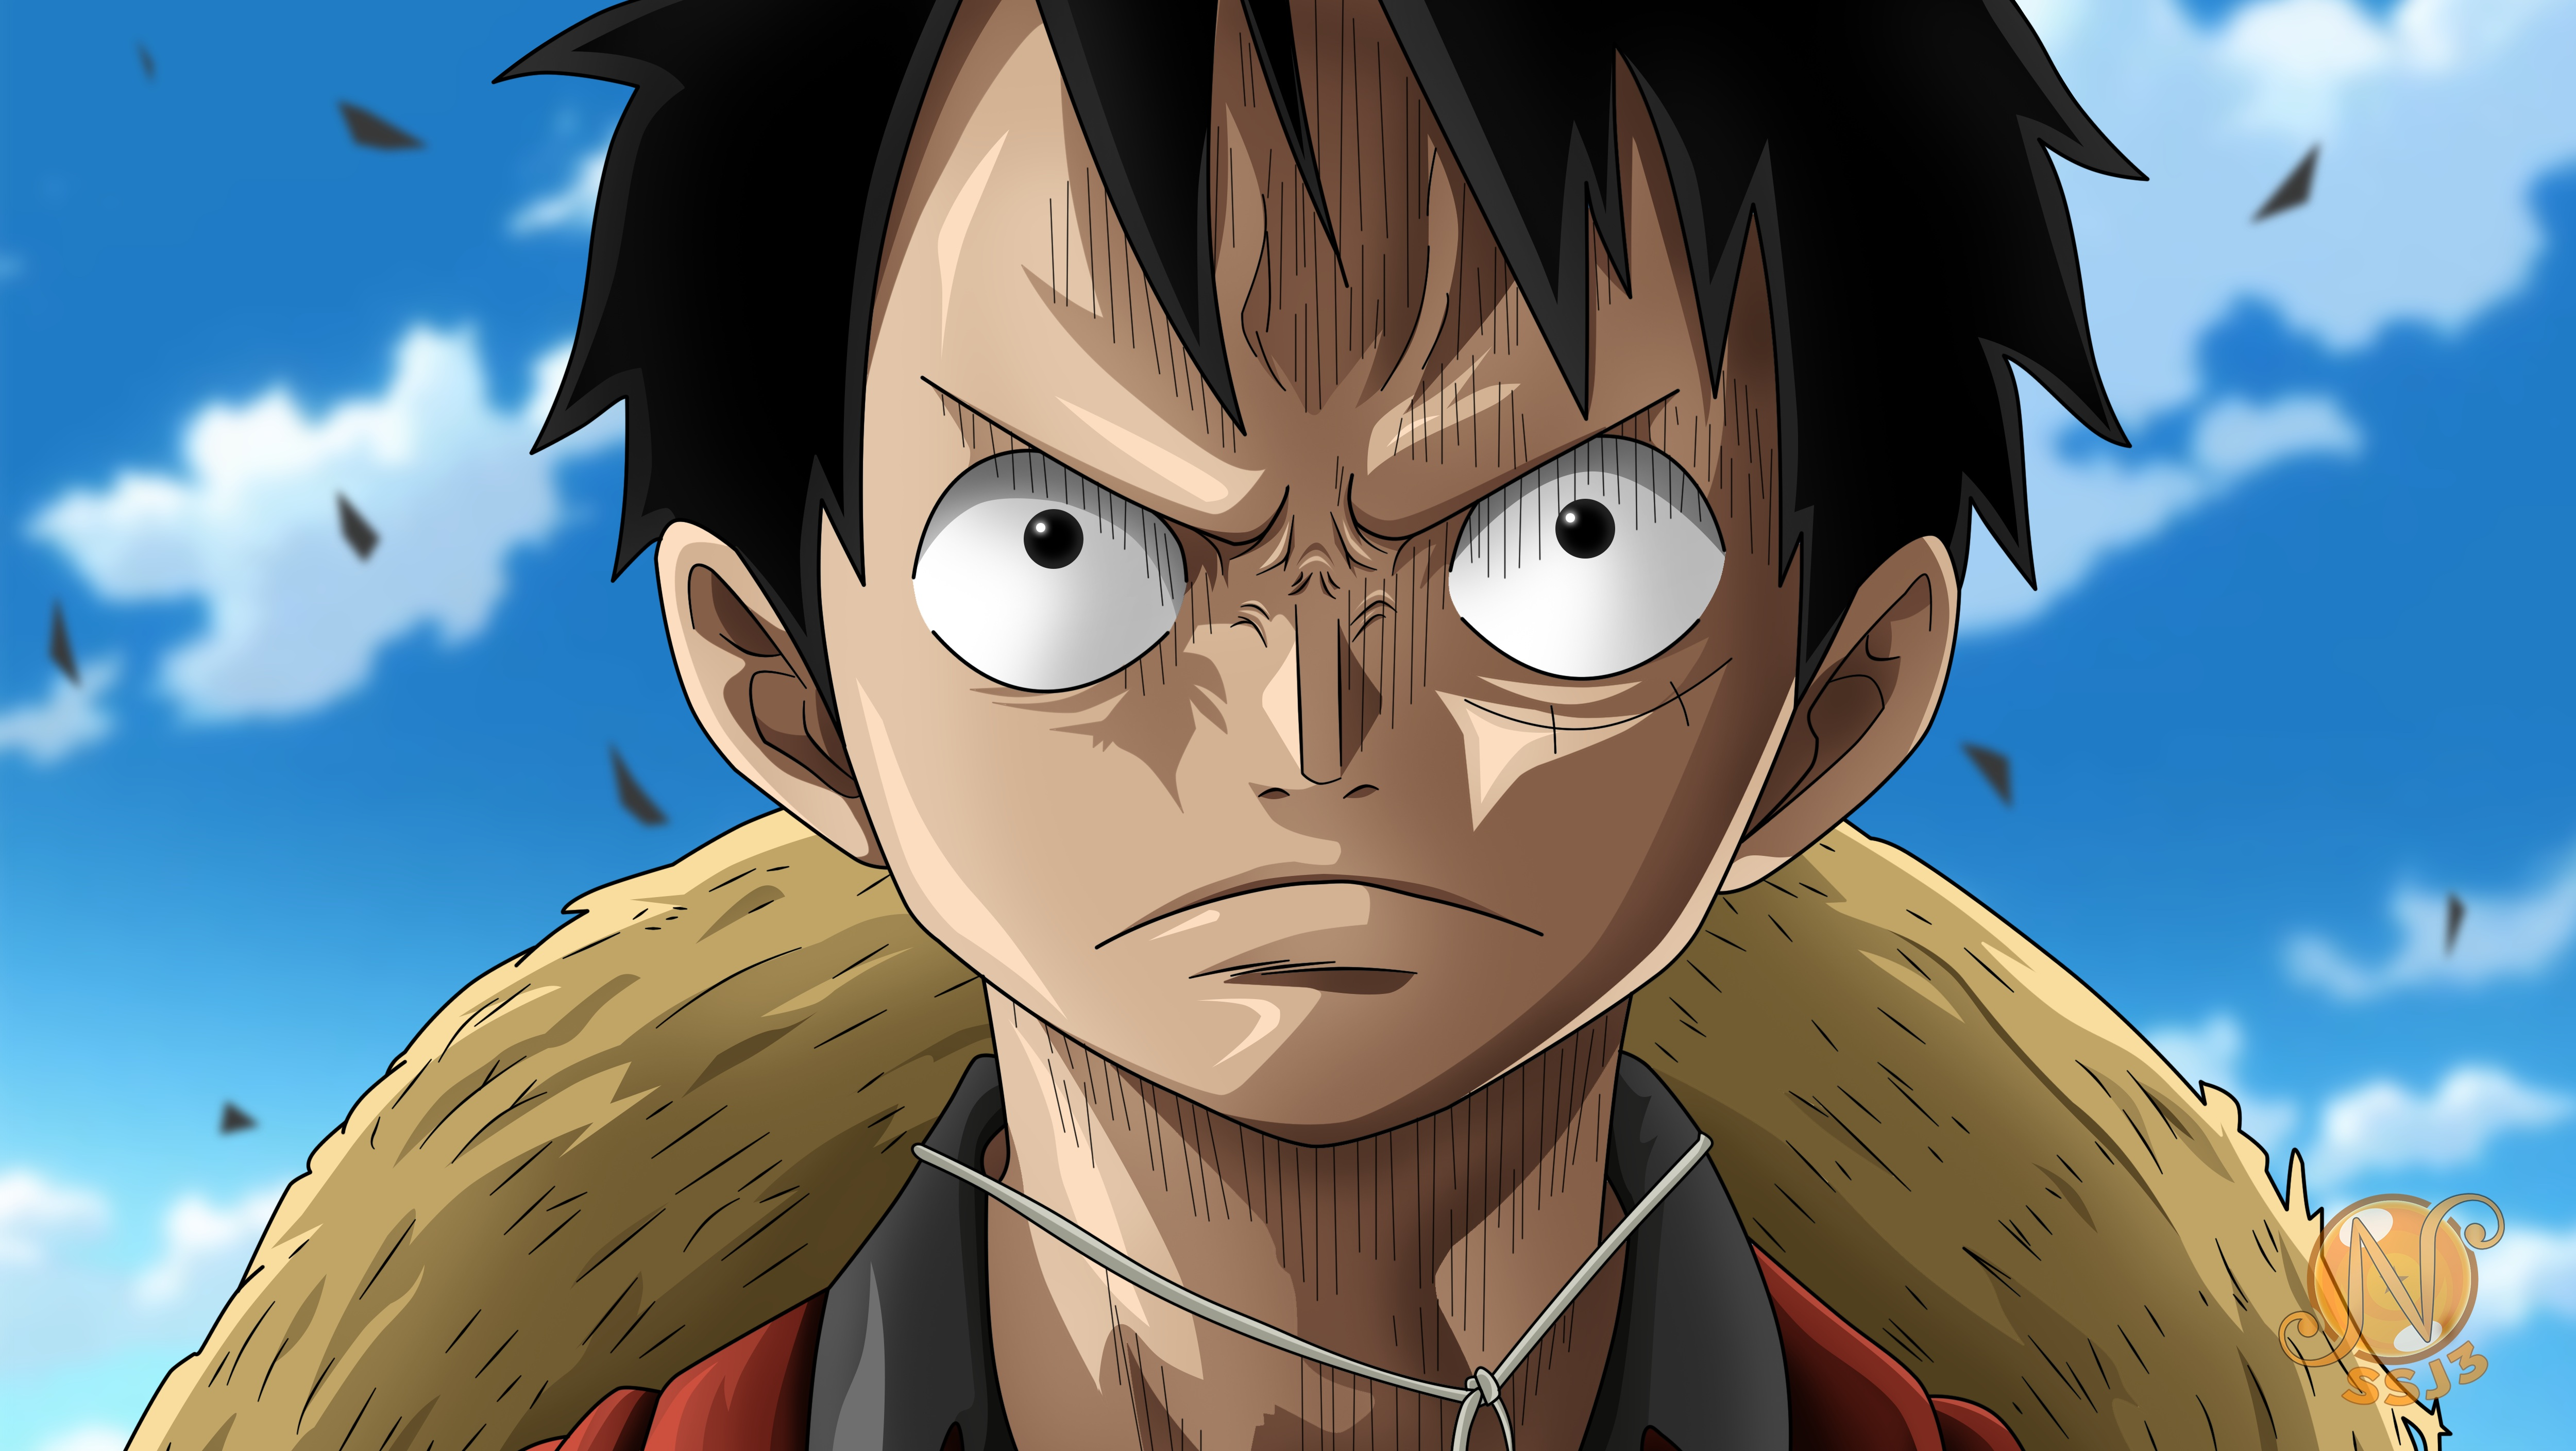 Monkey D Luffy From One Piece Anime Wallpaper Id 4015